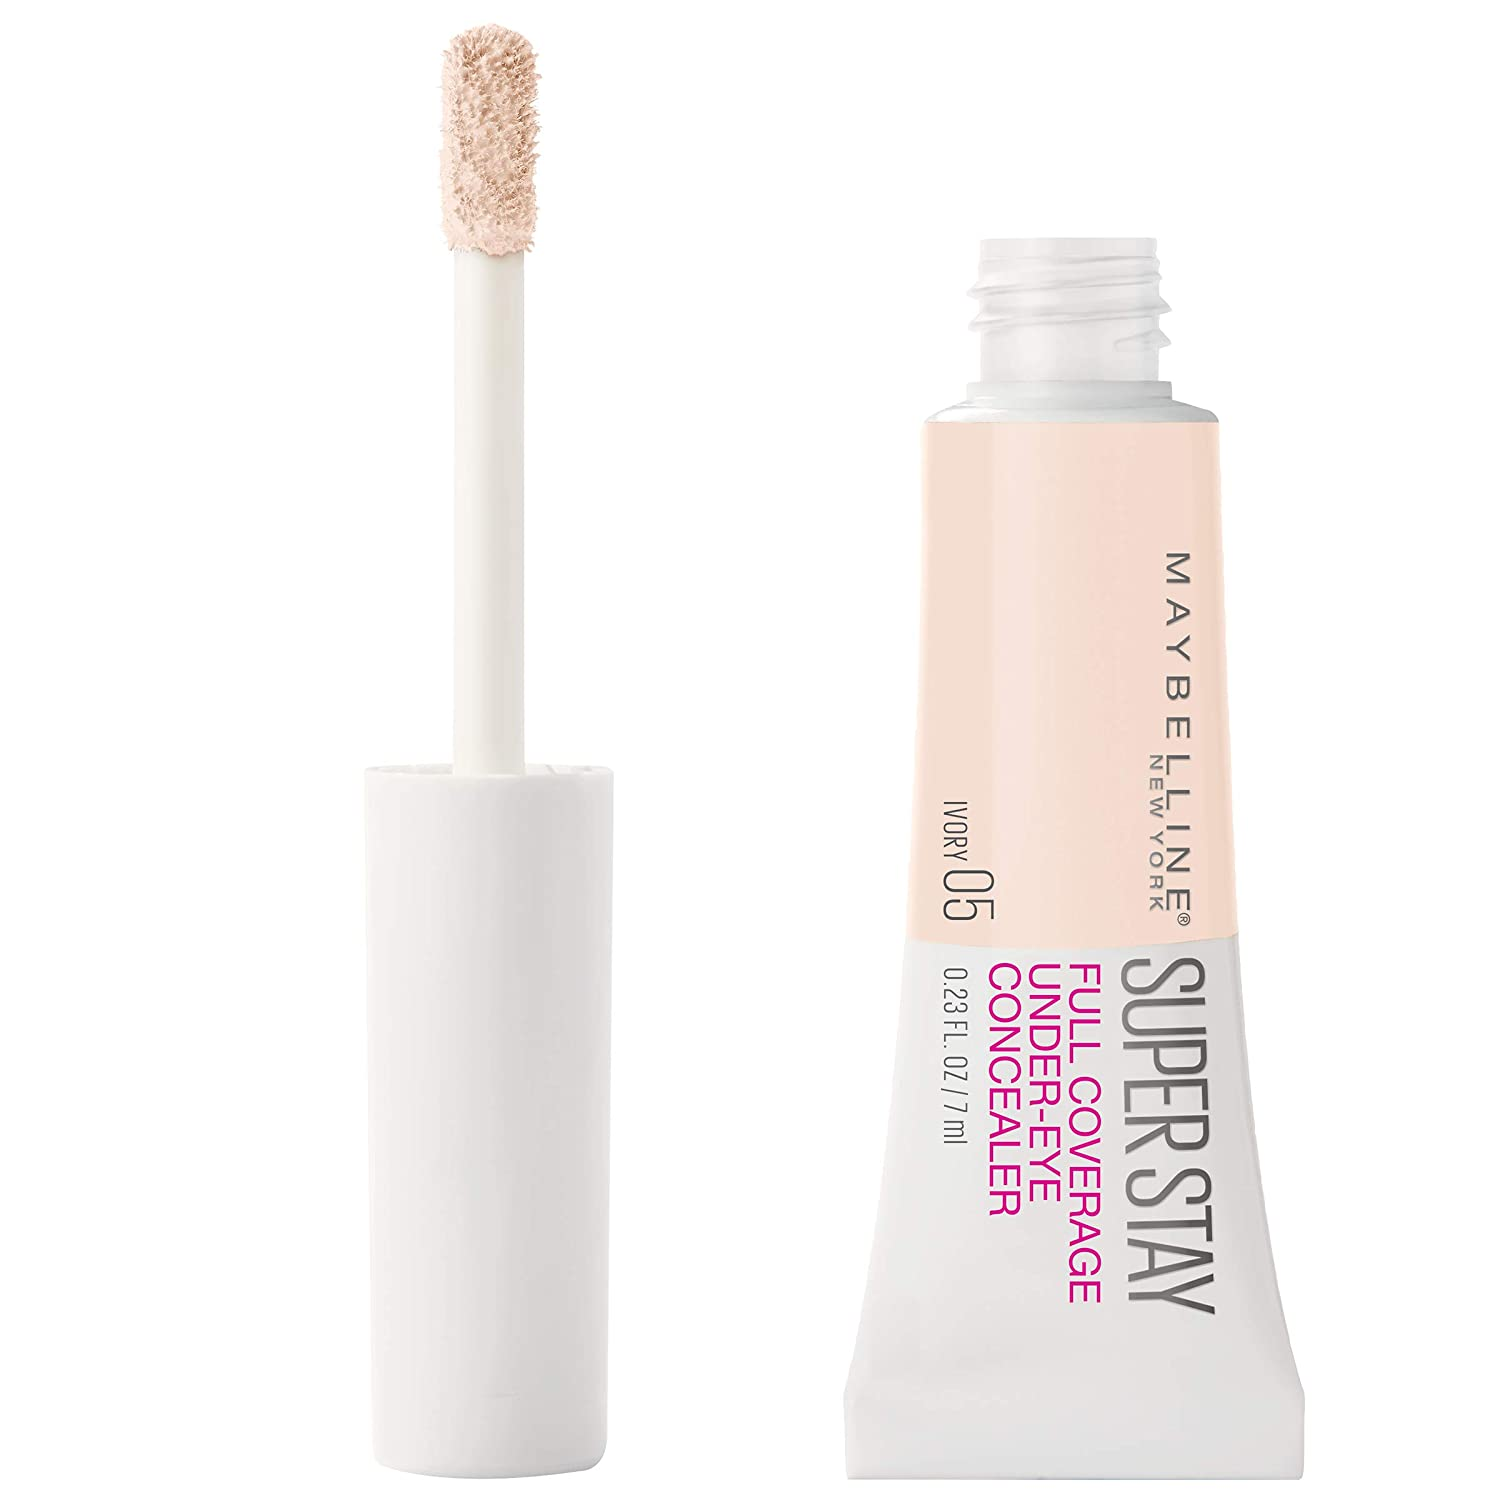 Maybelline New York Super Stay Super Stay Full Coverage, Brightening, Long Lasting, Under-eye Concealer Liquid Makeup For Up To 24H Wear, With Paddle Applicator, 05 Ivory, 0.23 fl. oz.